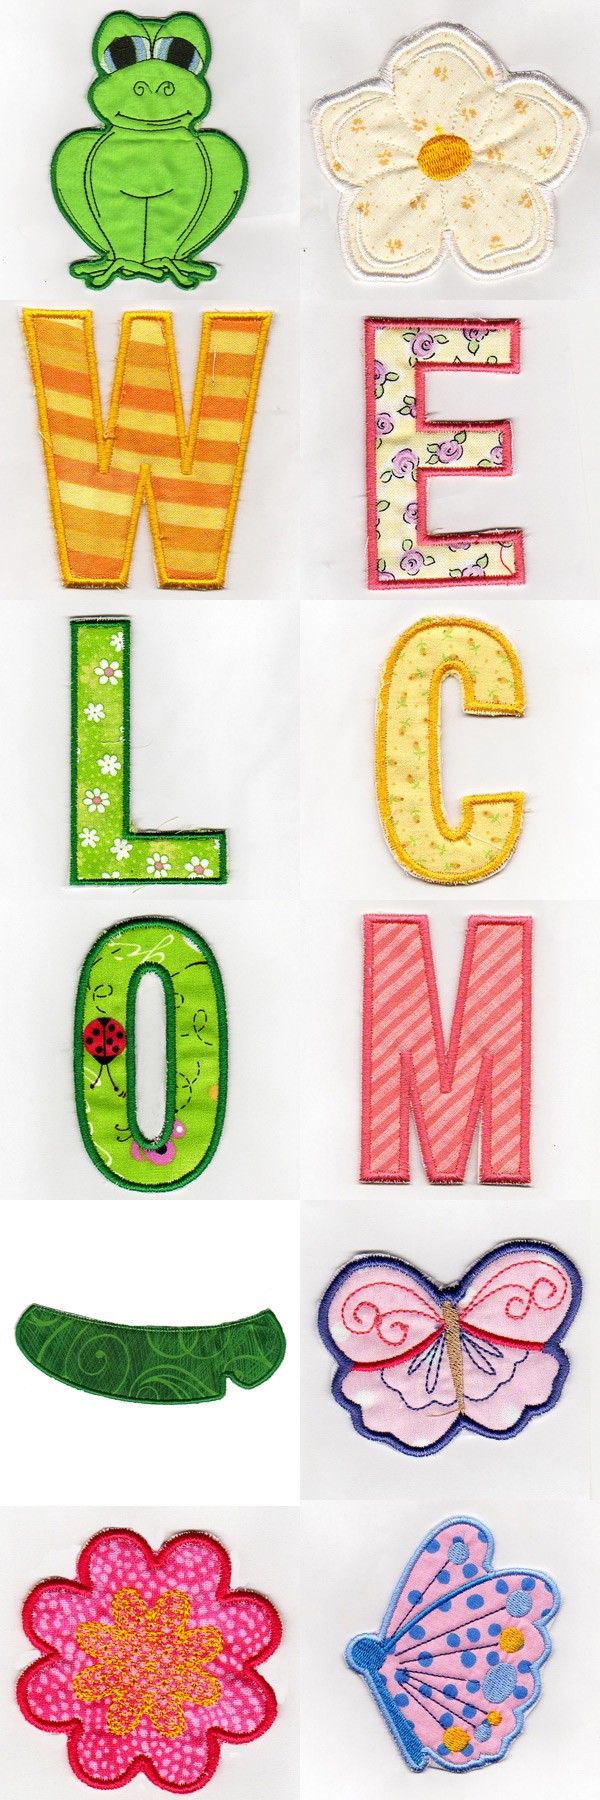 Frog Welcome Banner Embroidery Machine Design Details